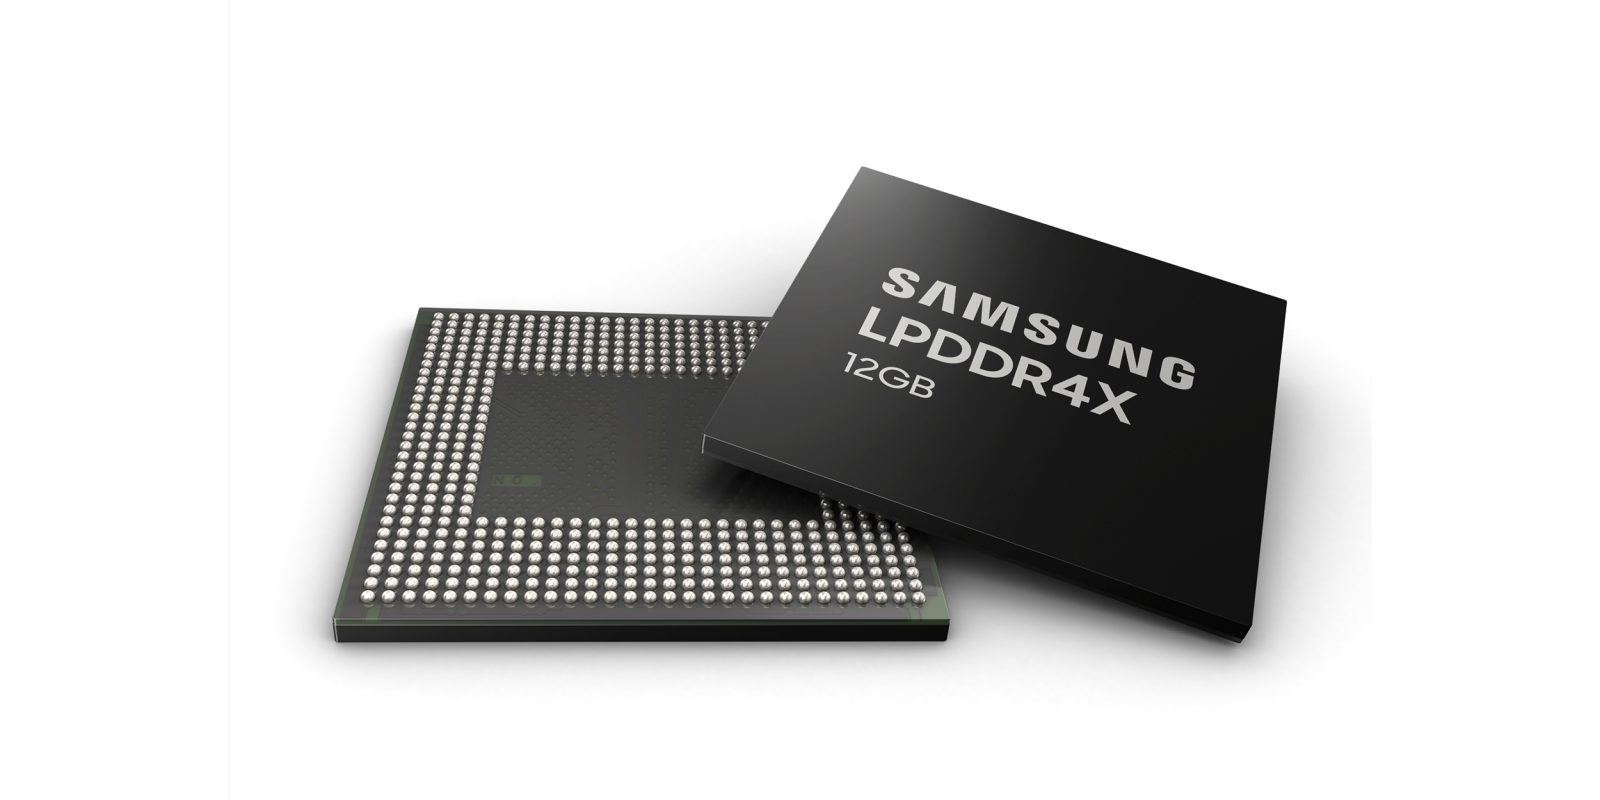 Samsung now mass-producing 12GB RAM chip for phones - 9to5Google